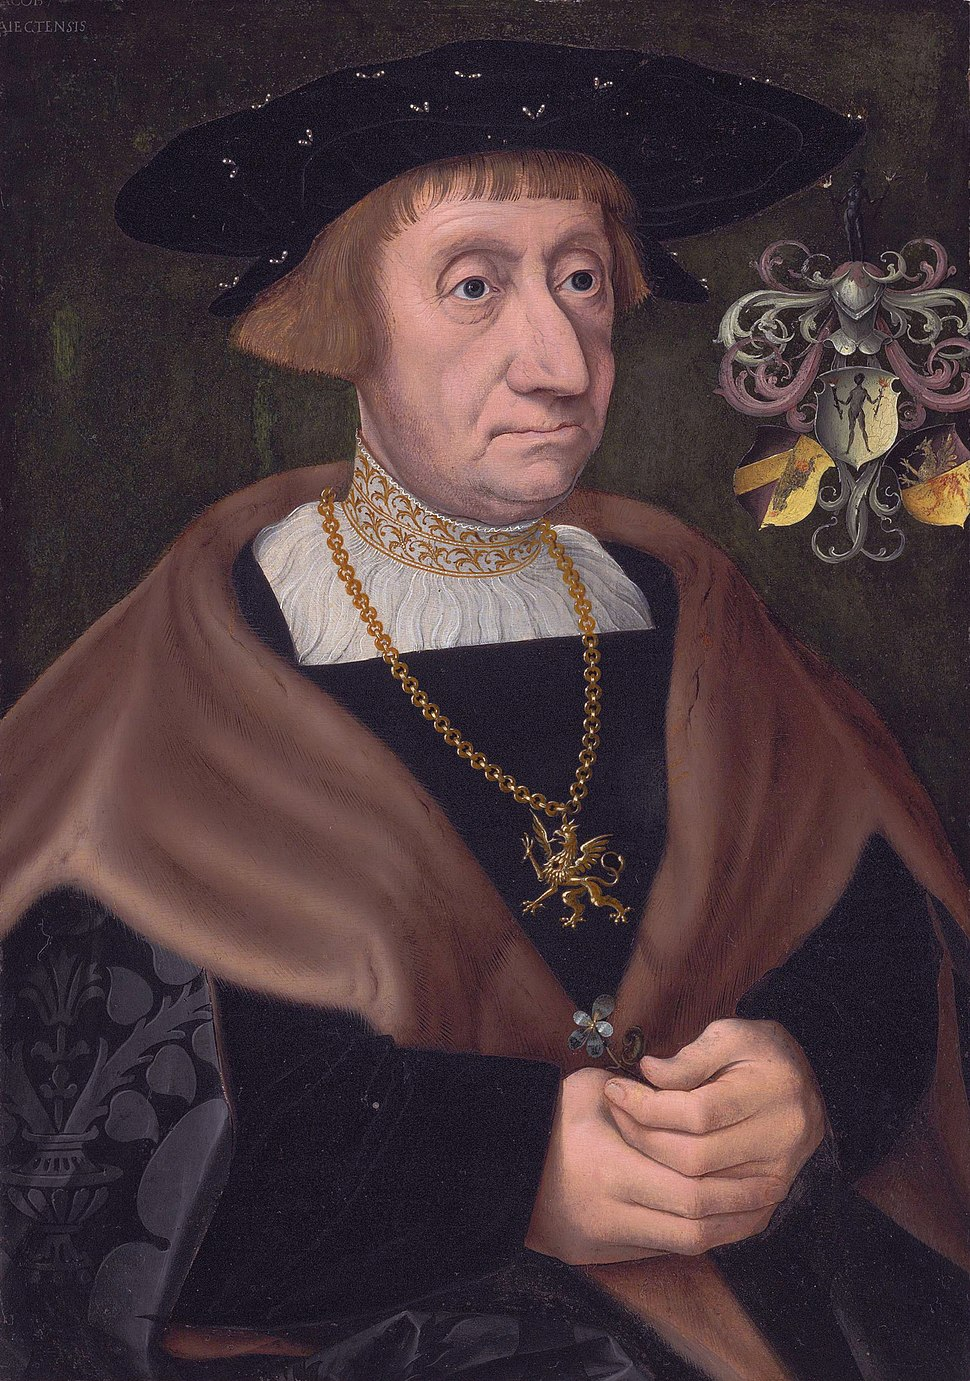 Mathias Mulich (1470-1528), Merchant in Lübeck, by Jacob Claesz van Utrecht